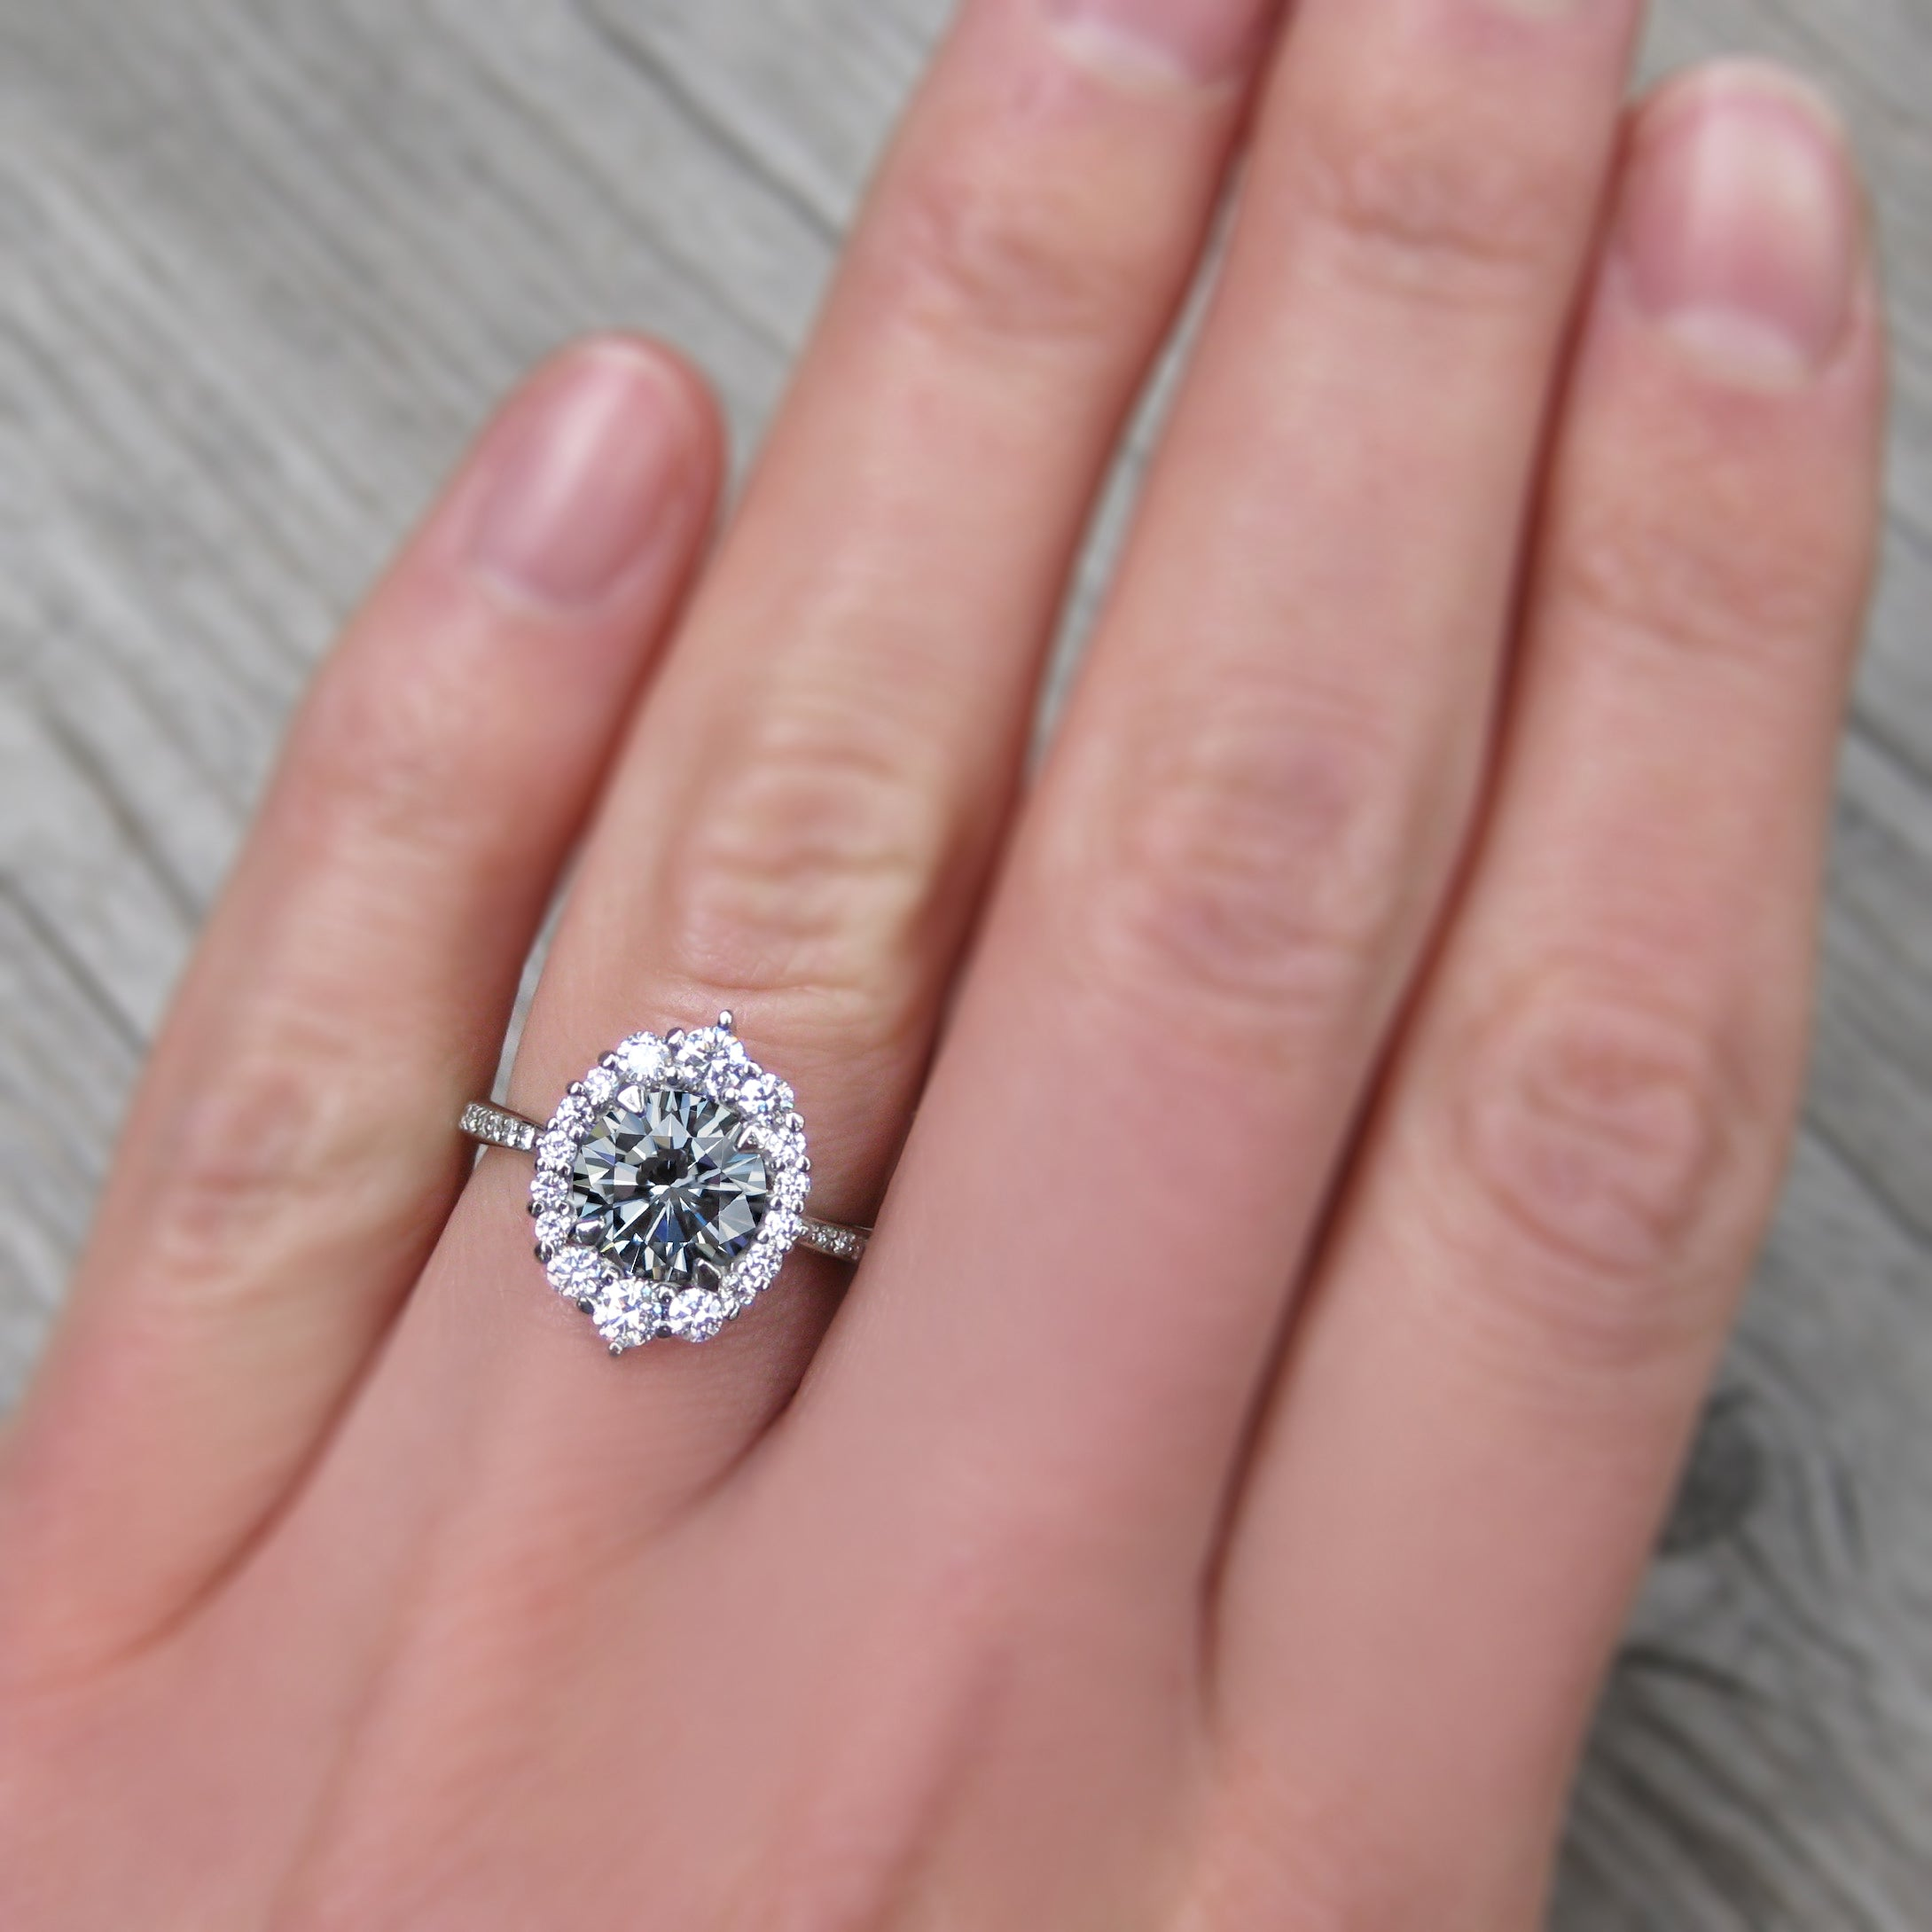 Grey Moissanite Engagement Ring with Diamond Halo & Pavé Band ...